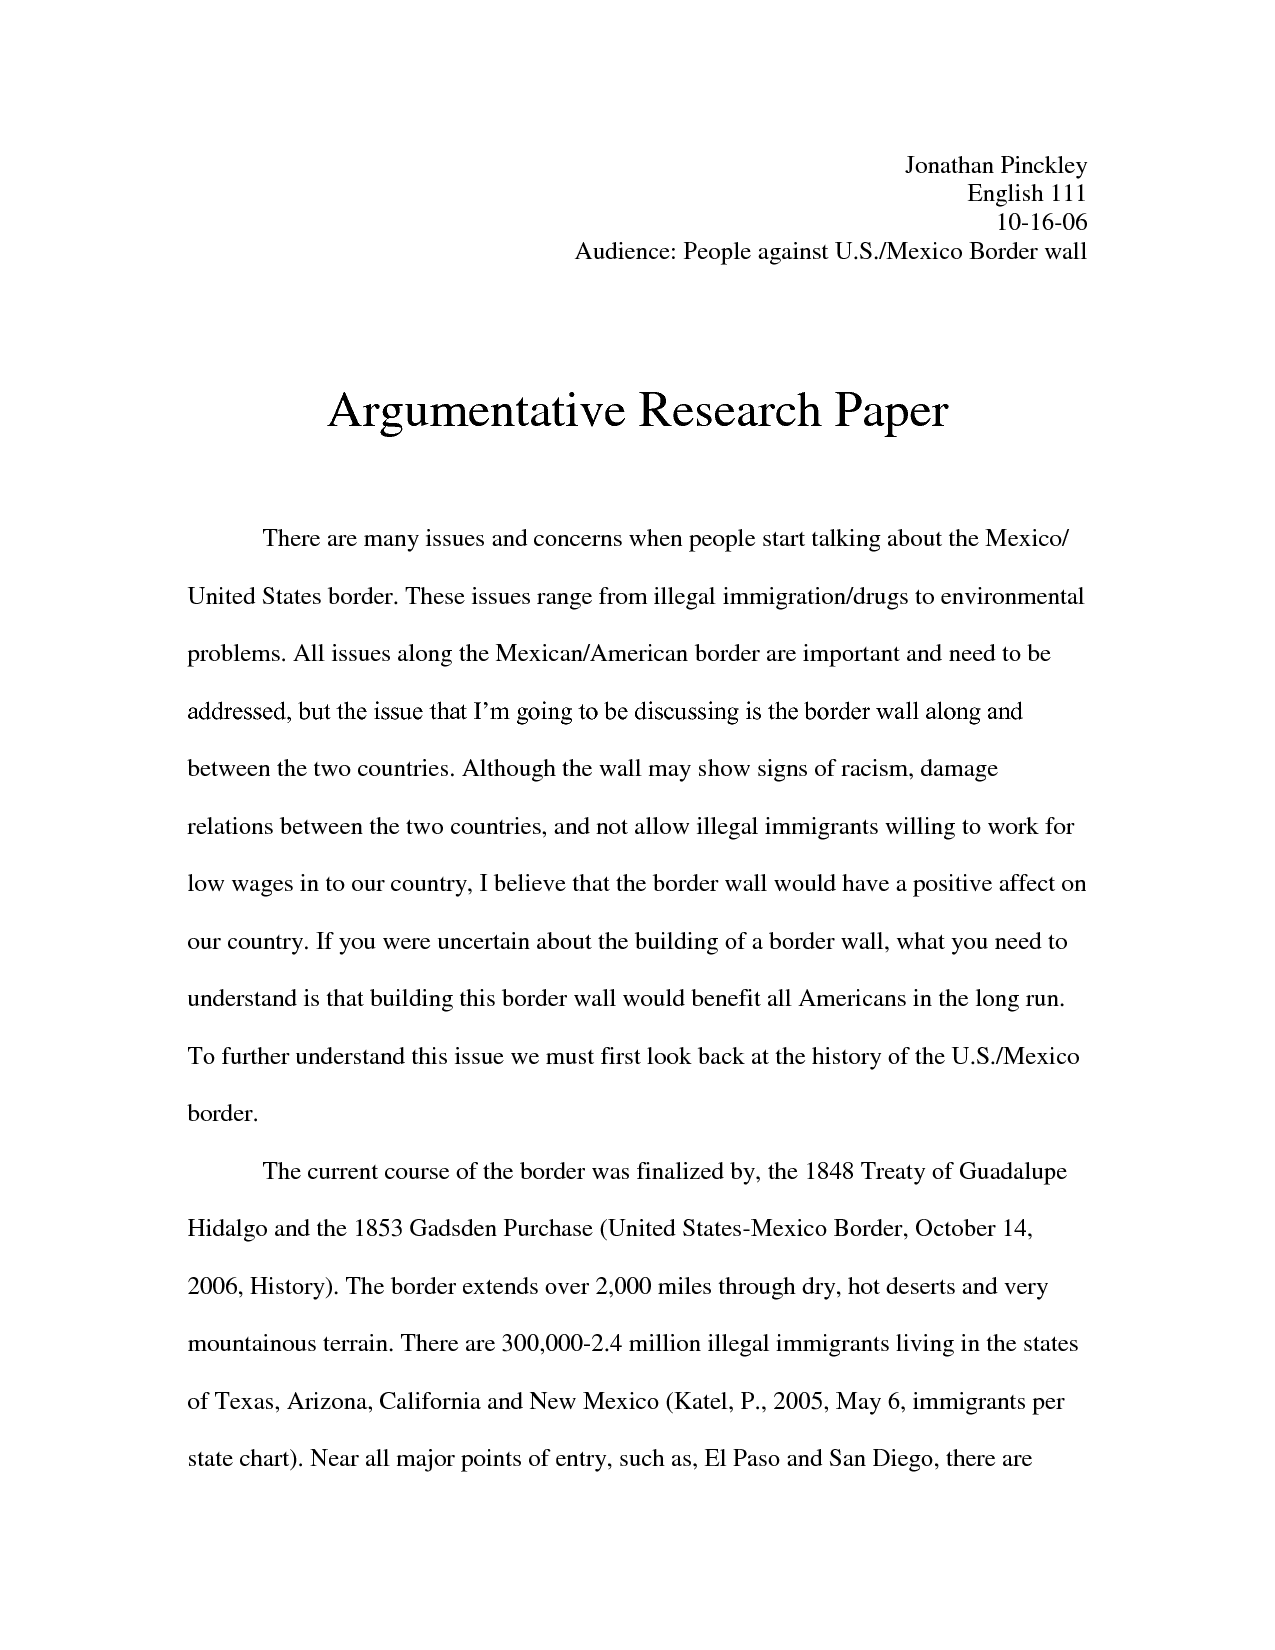 014 Uncategorized Debate20y Argumentative Thesis High School Topics Sentence Starters Outline Worksheet Structure20 For Research Rare A Paper Medical Interesting Full